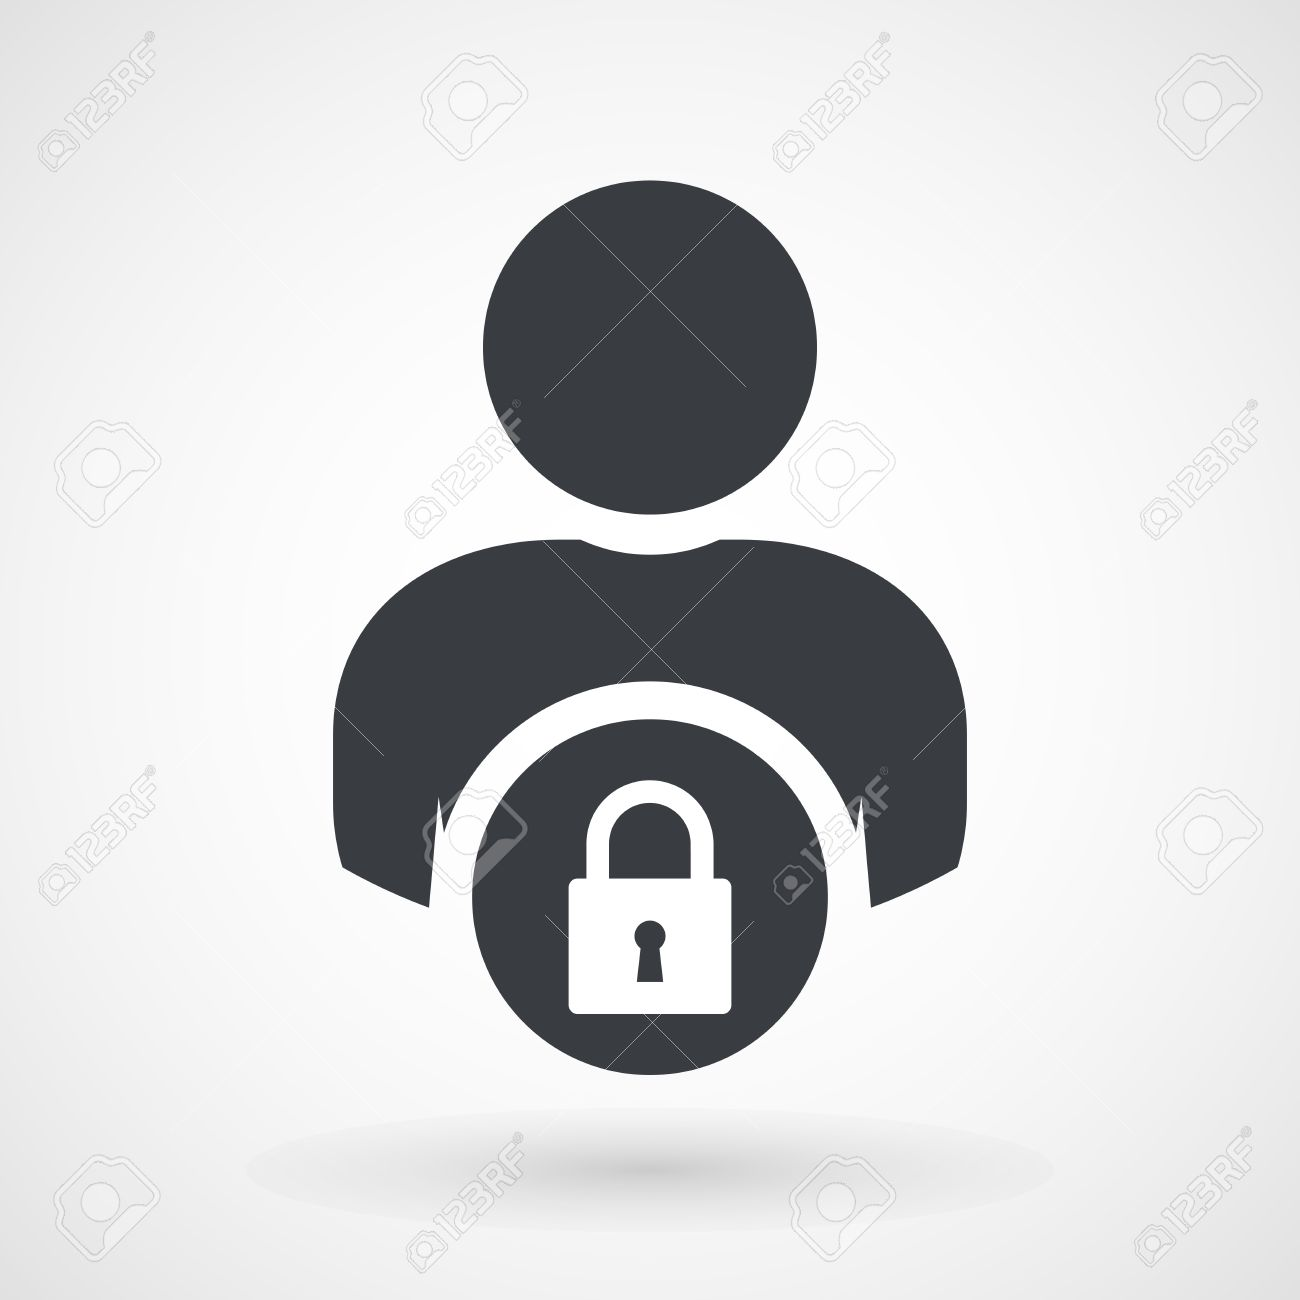 User login or access authentication icon